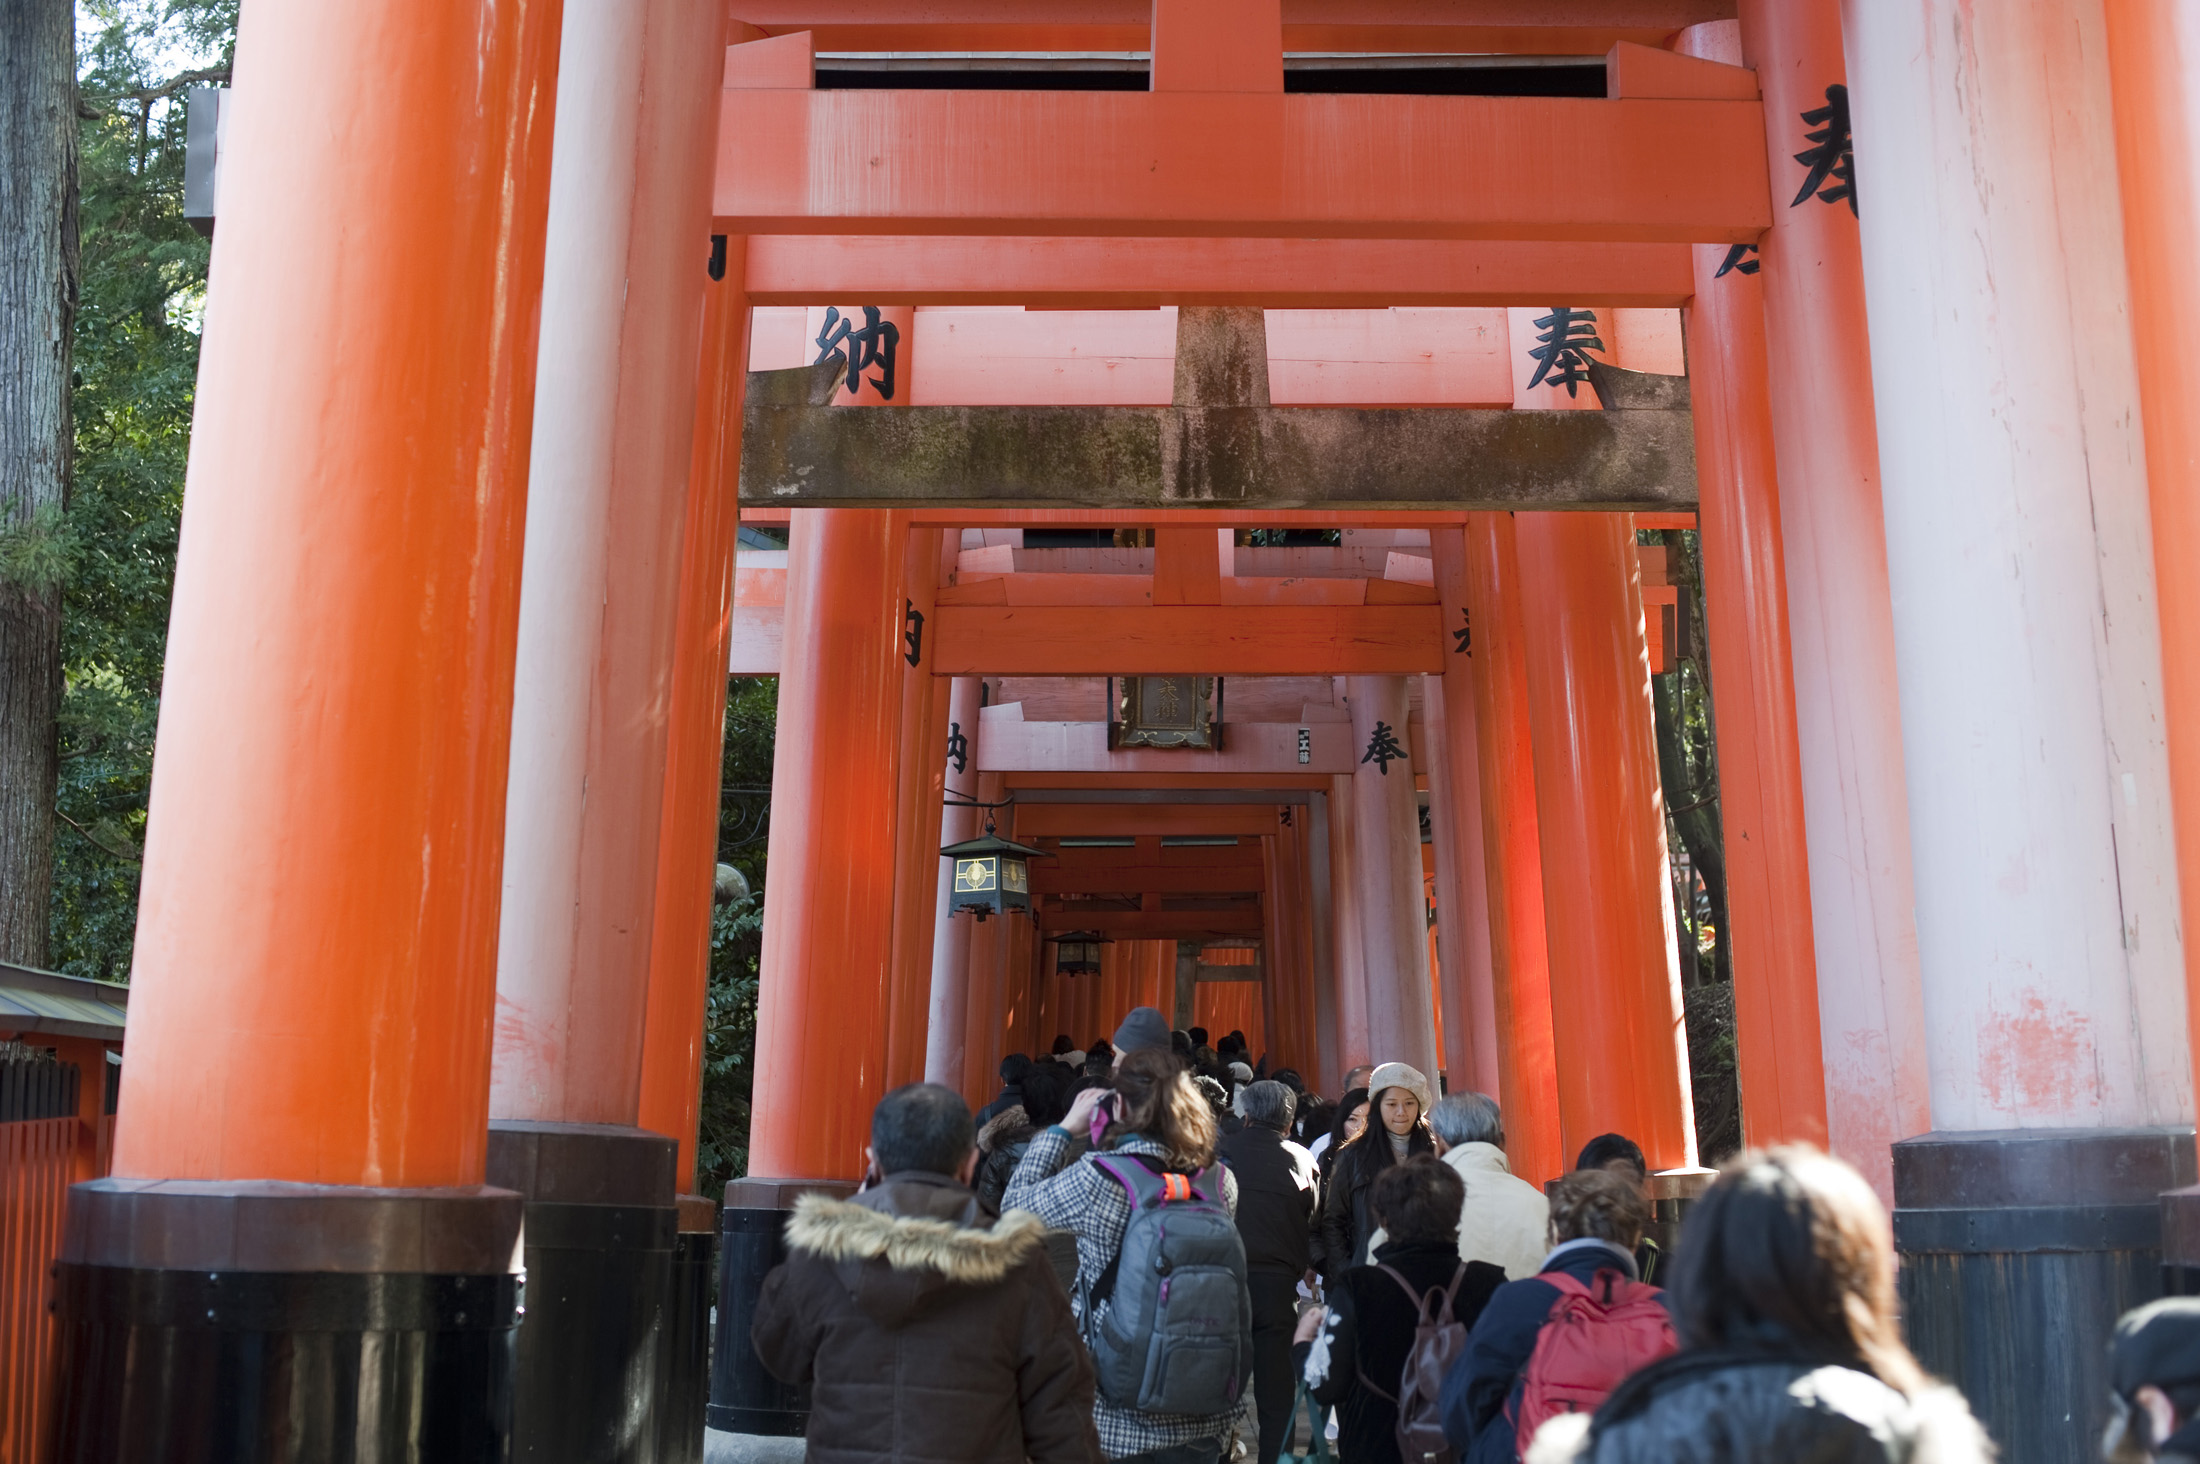 a tunnel of torii gates at the Fushimi Inari-taisha shrine